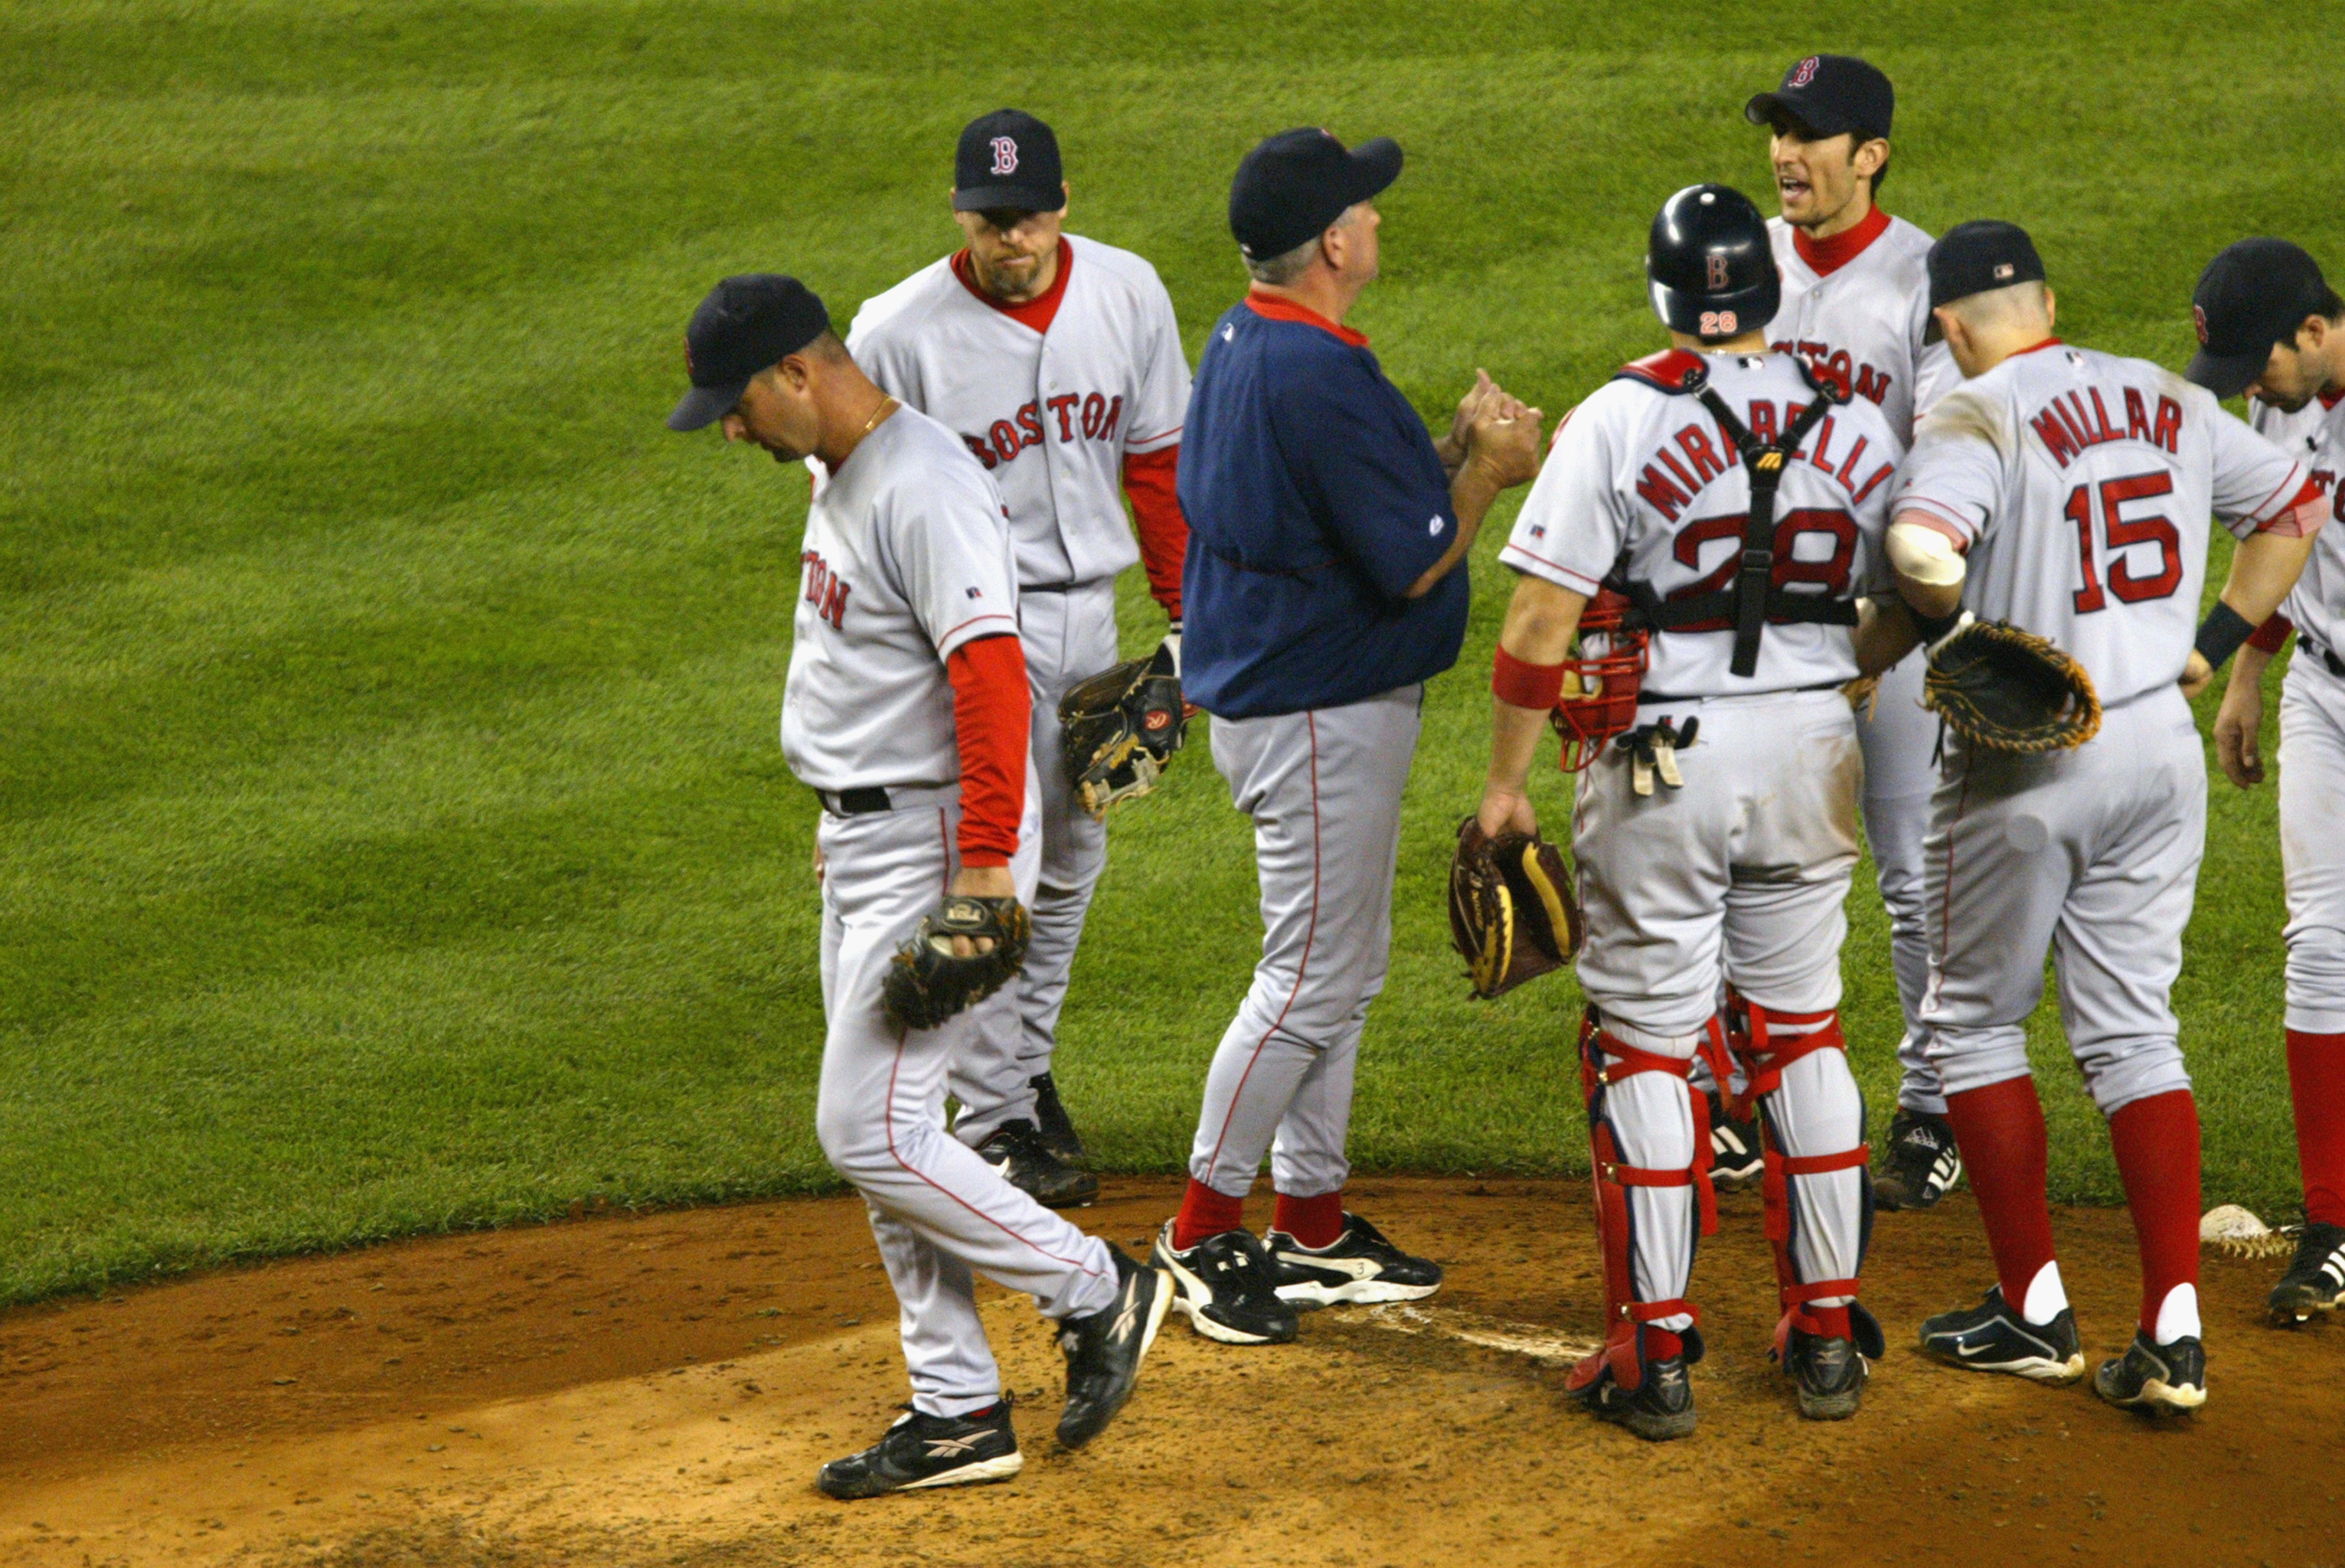 BRONX, NY - OCTOBER 8:  Starting pitcher Tim Wakefield  #49 of the Boston Red Sox is pulled by manager Grady Little during game 1 of the American League Championship Series against the New York Yankees on October 8, 2003 at Yankee Stadium in the Bronx, Ne